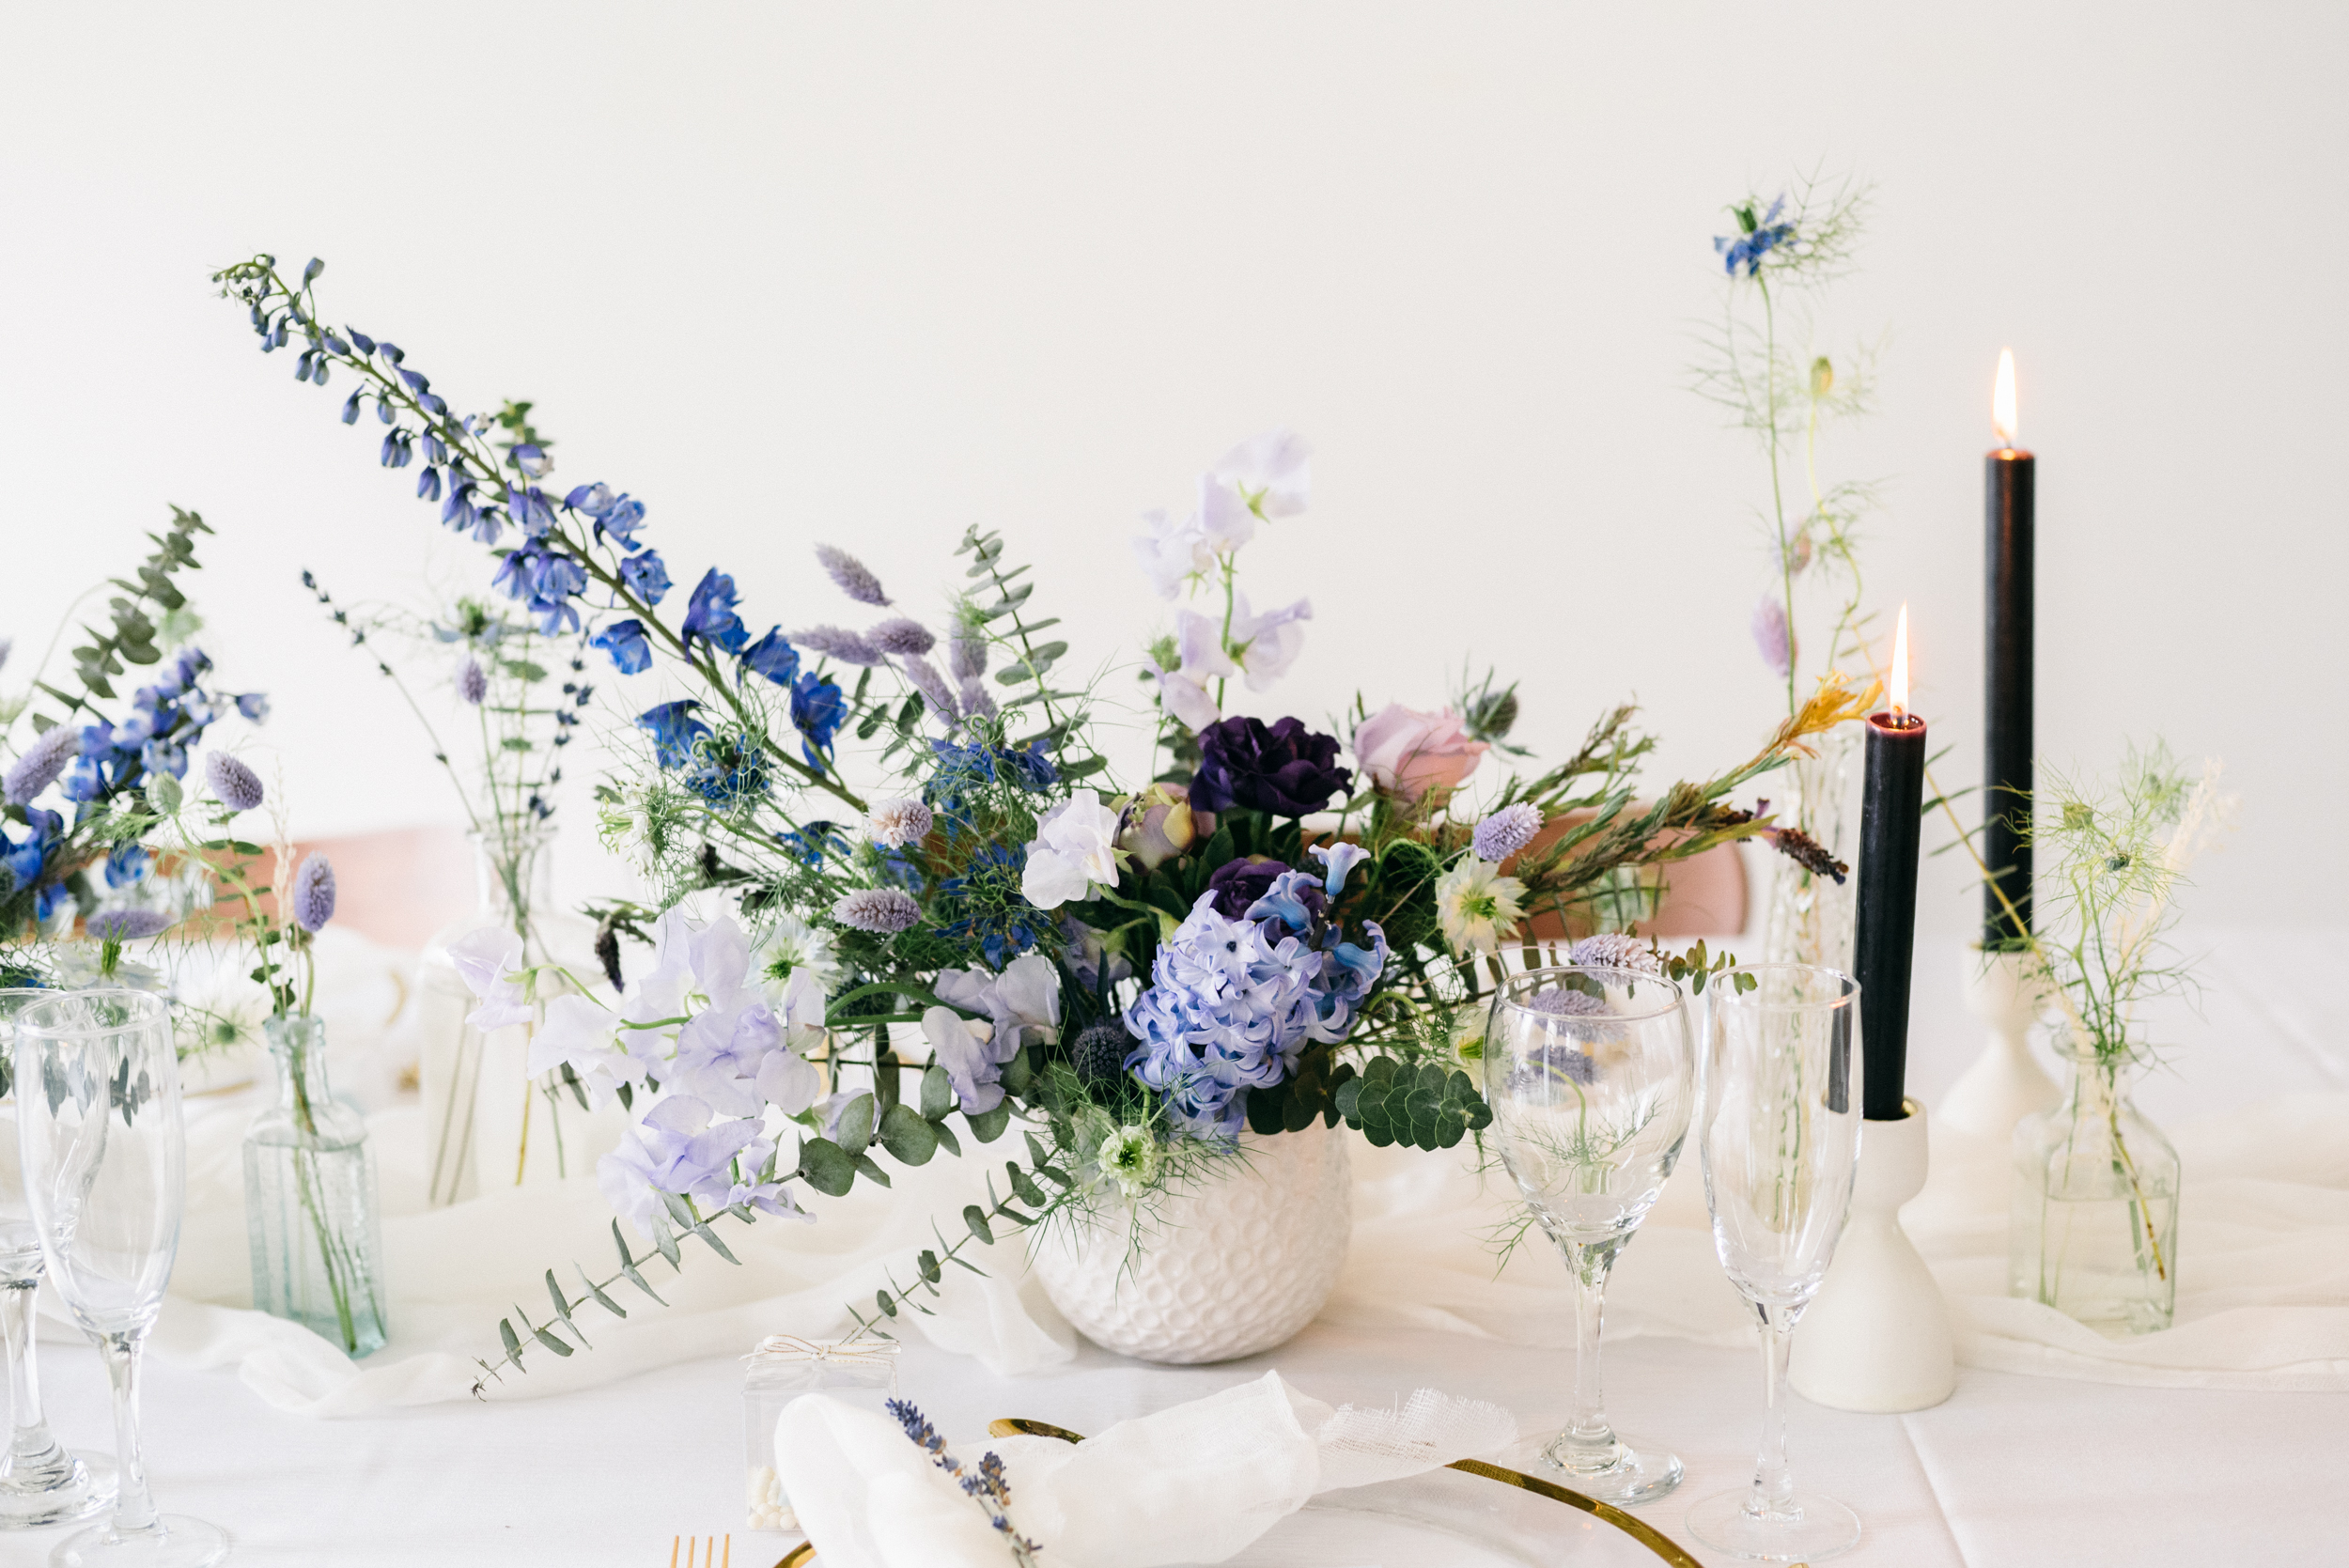 styled-tablescapes-68.jpg